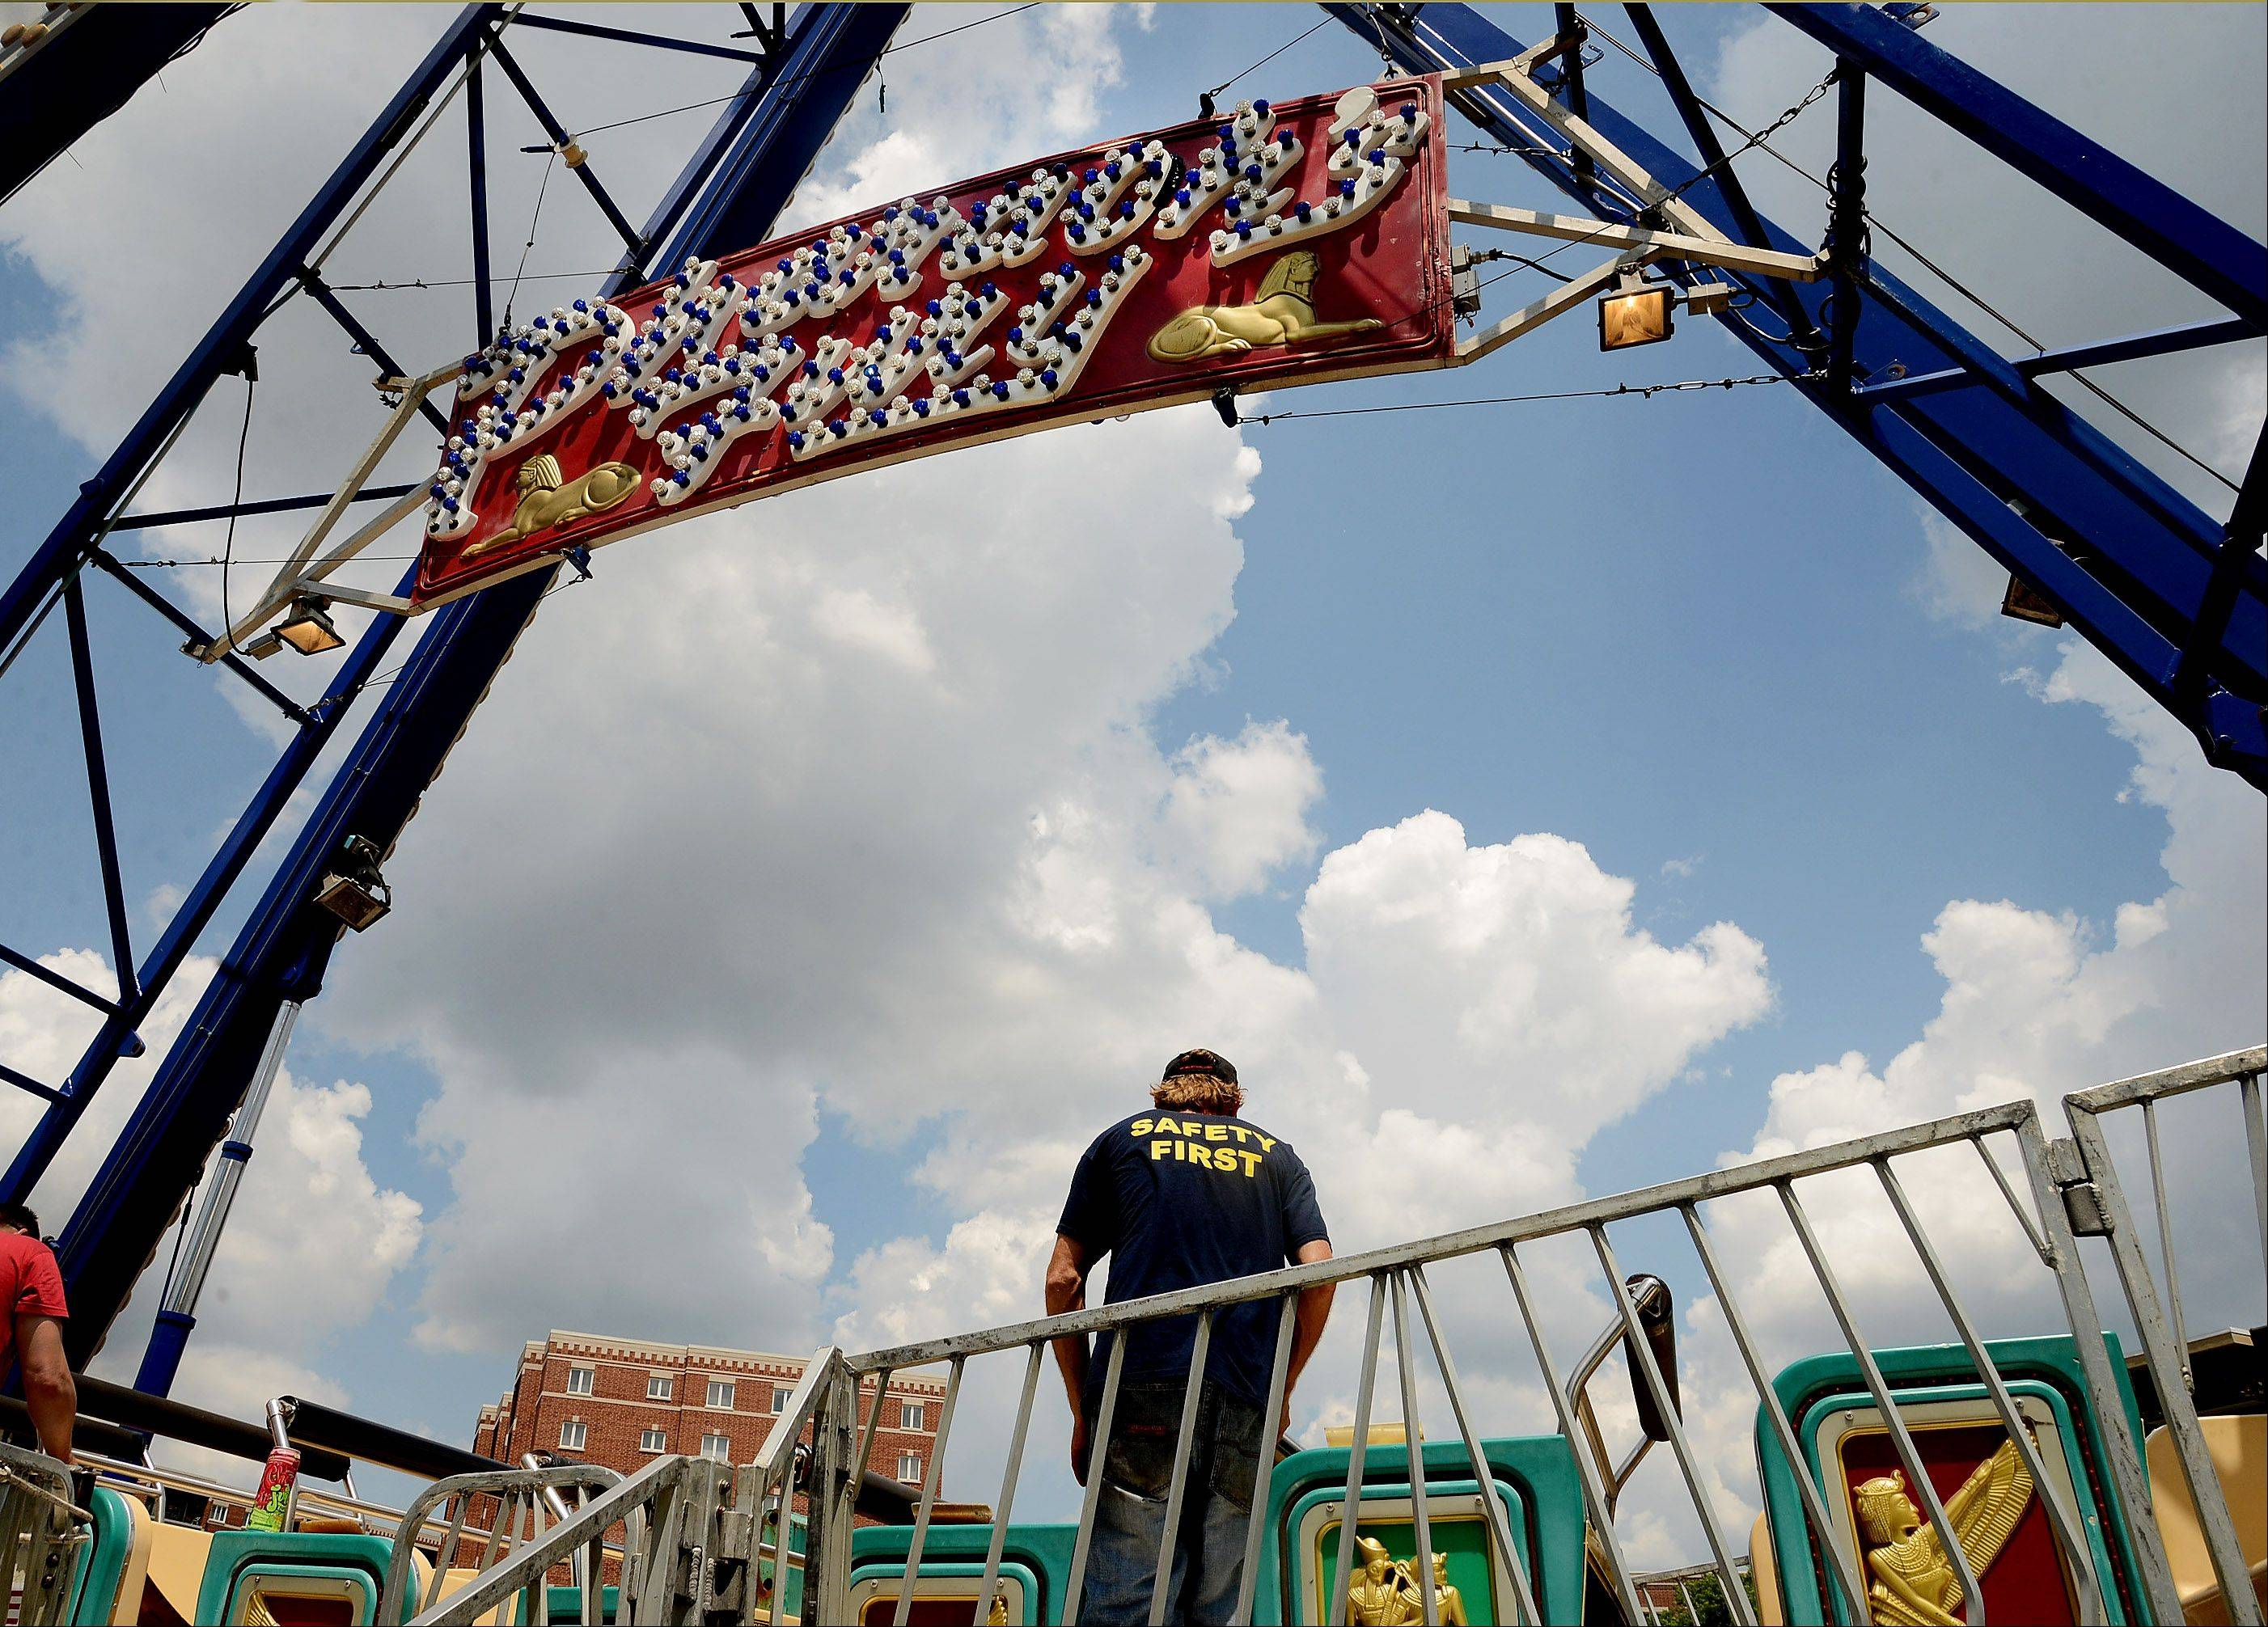 Maintenance man Greg Etheridge of D&J Amusements sets up the Pharaoh's Fury ride Thursday in preparation for Des Plaines Summer Fling in downtown Des Plaines. The three-day festival highlighted by live music, food, games and carnival rides kicks off Friday.